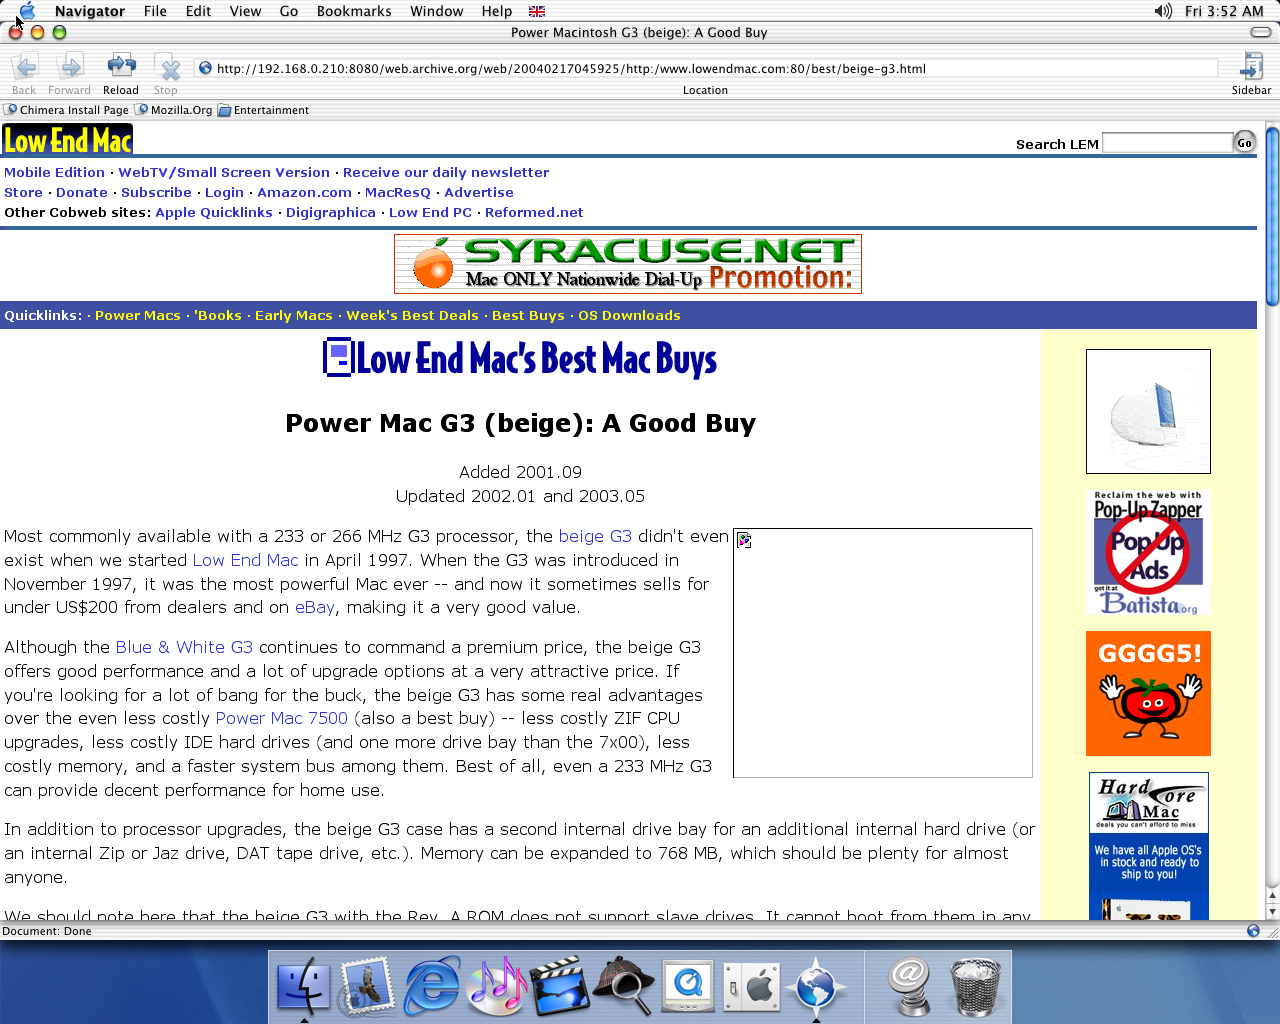 OS X 10.1 PPC with Chimera 0.6 displaying a page from Low End Mac archived at February 17, 2004 at 04:59:25